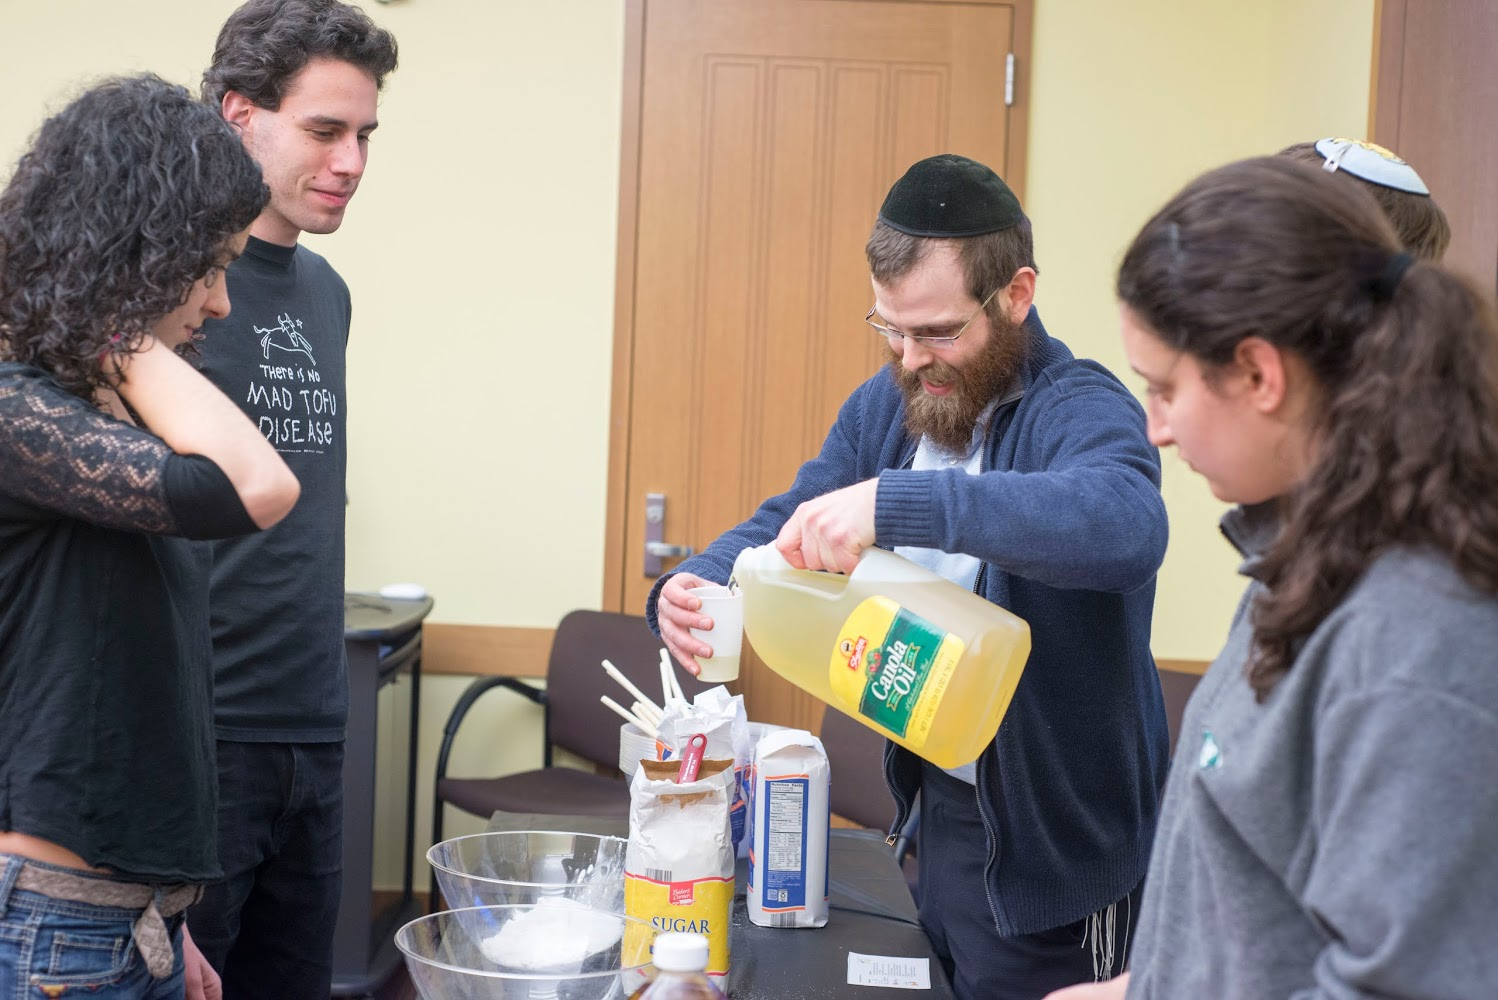 About 30 students gathered in Usdan 110 on March 2 to celebrate the coming of Purim by making hamantaschen. The triangular cookies are filled with a sweet filling, usually made of poppy seeds, and are traditionally eaten during the Purim holiday, which begins on the evening of March 4. Matt Renetzky '18 and Rabbi Levi Schectman organized the event through Chabad at Wesleyan along with help from Elli Scharlin '18 and Aaron Josephs '18.